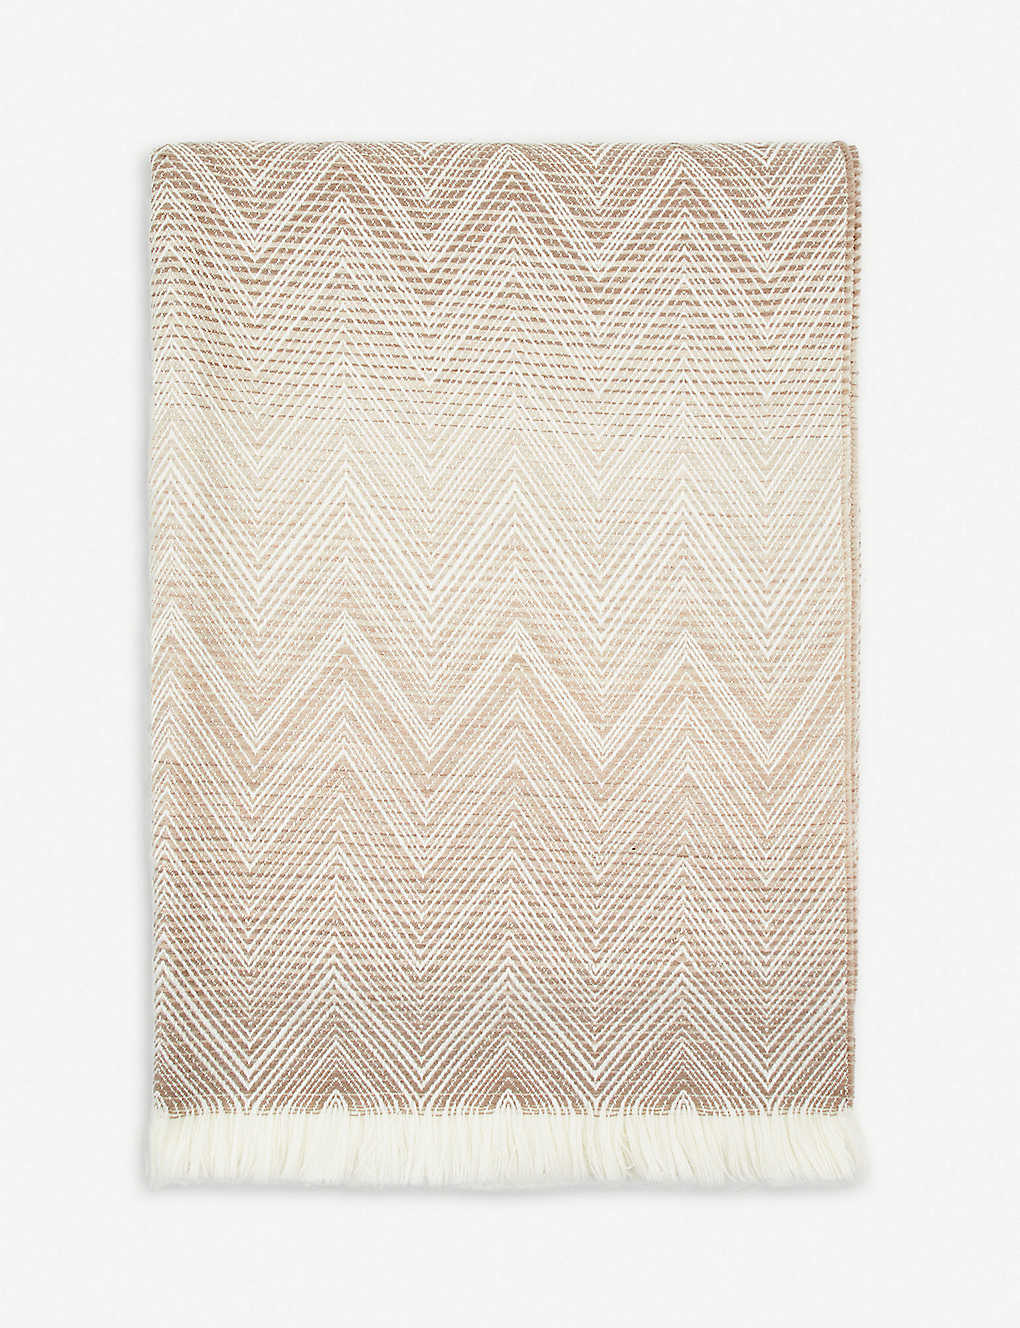 MISSONI HOME: Timmy lambswool throw 190cm x 130cm